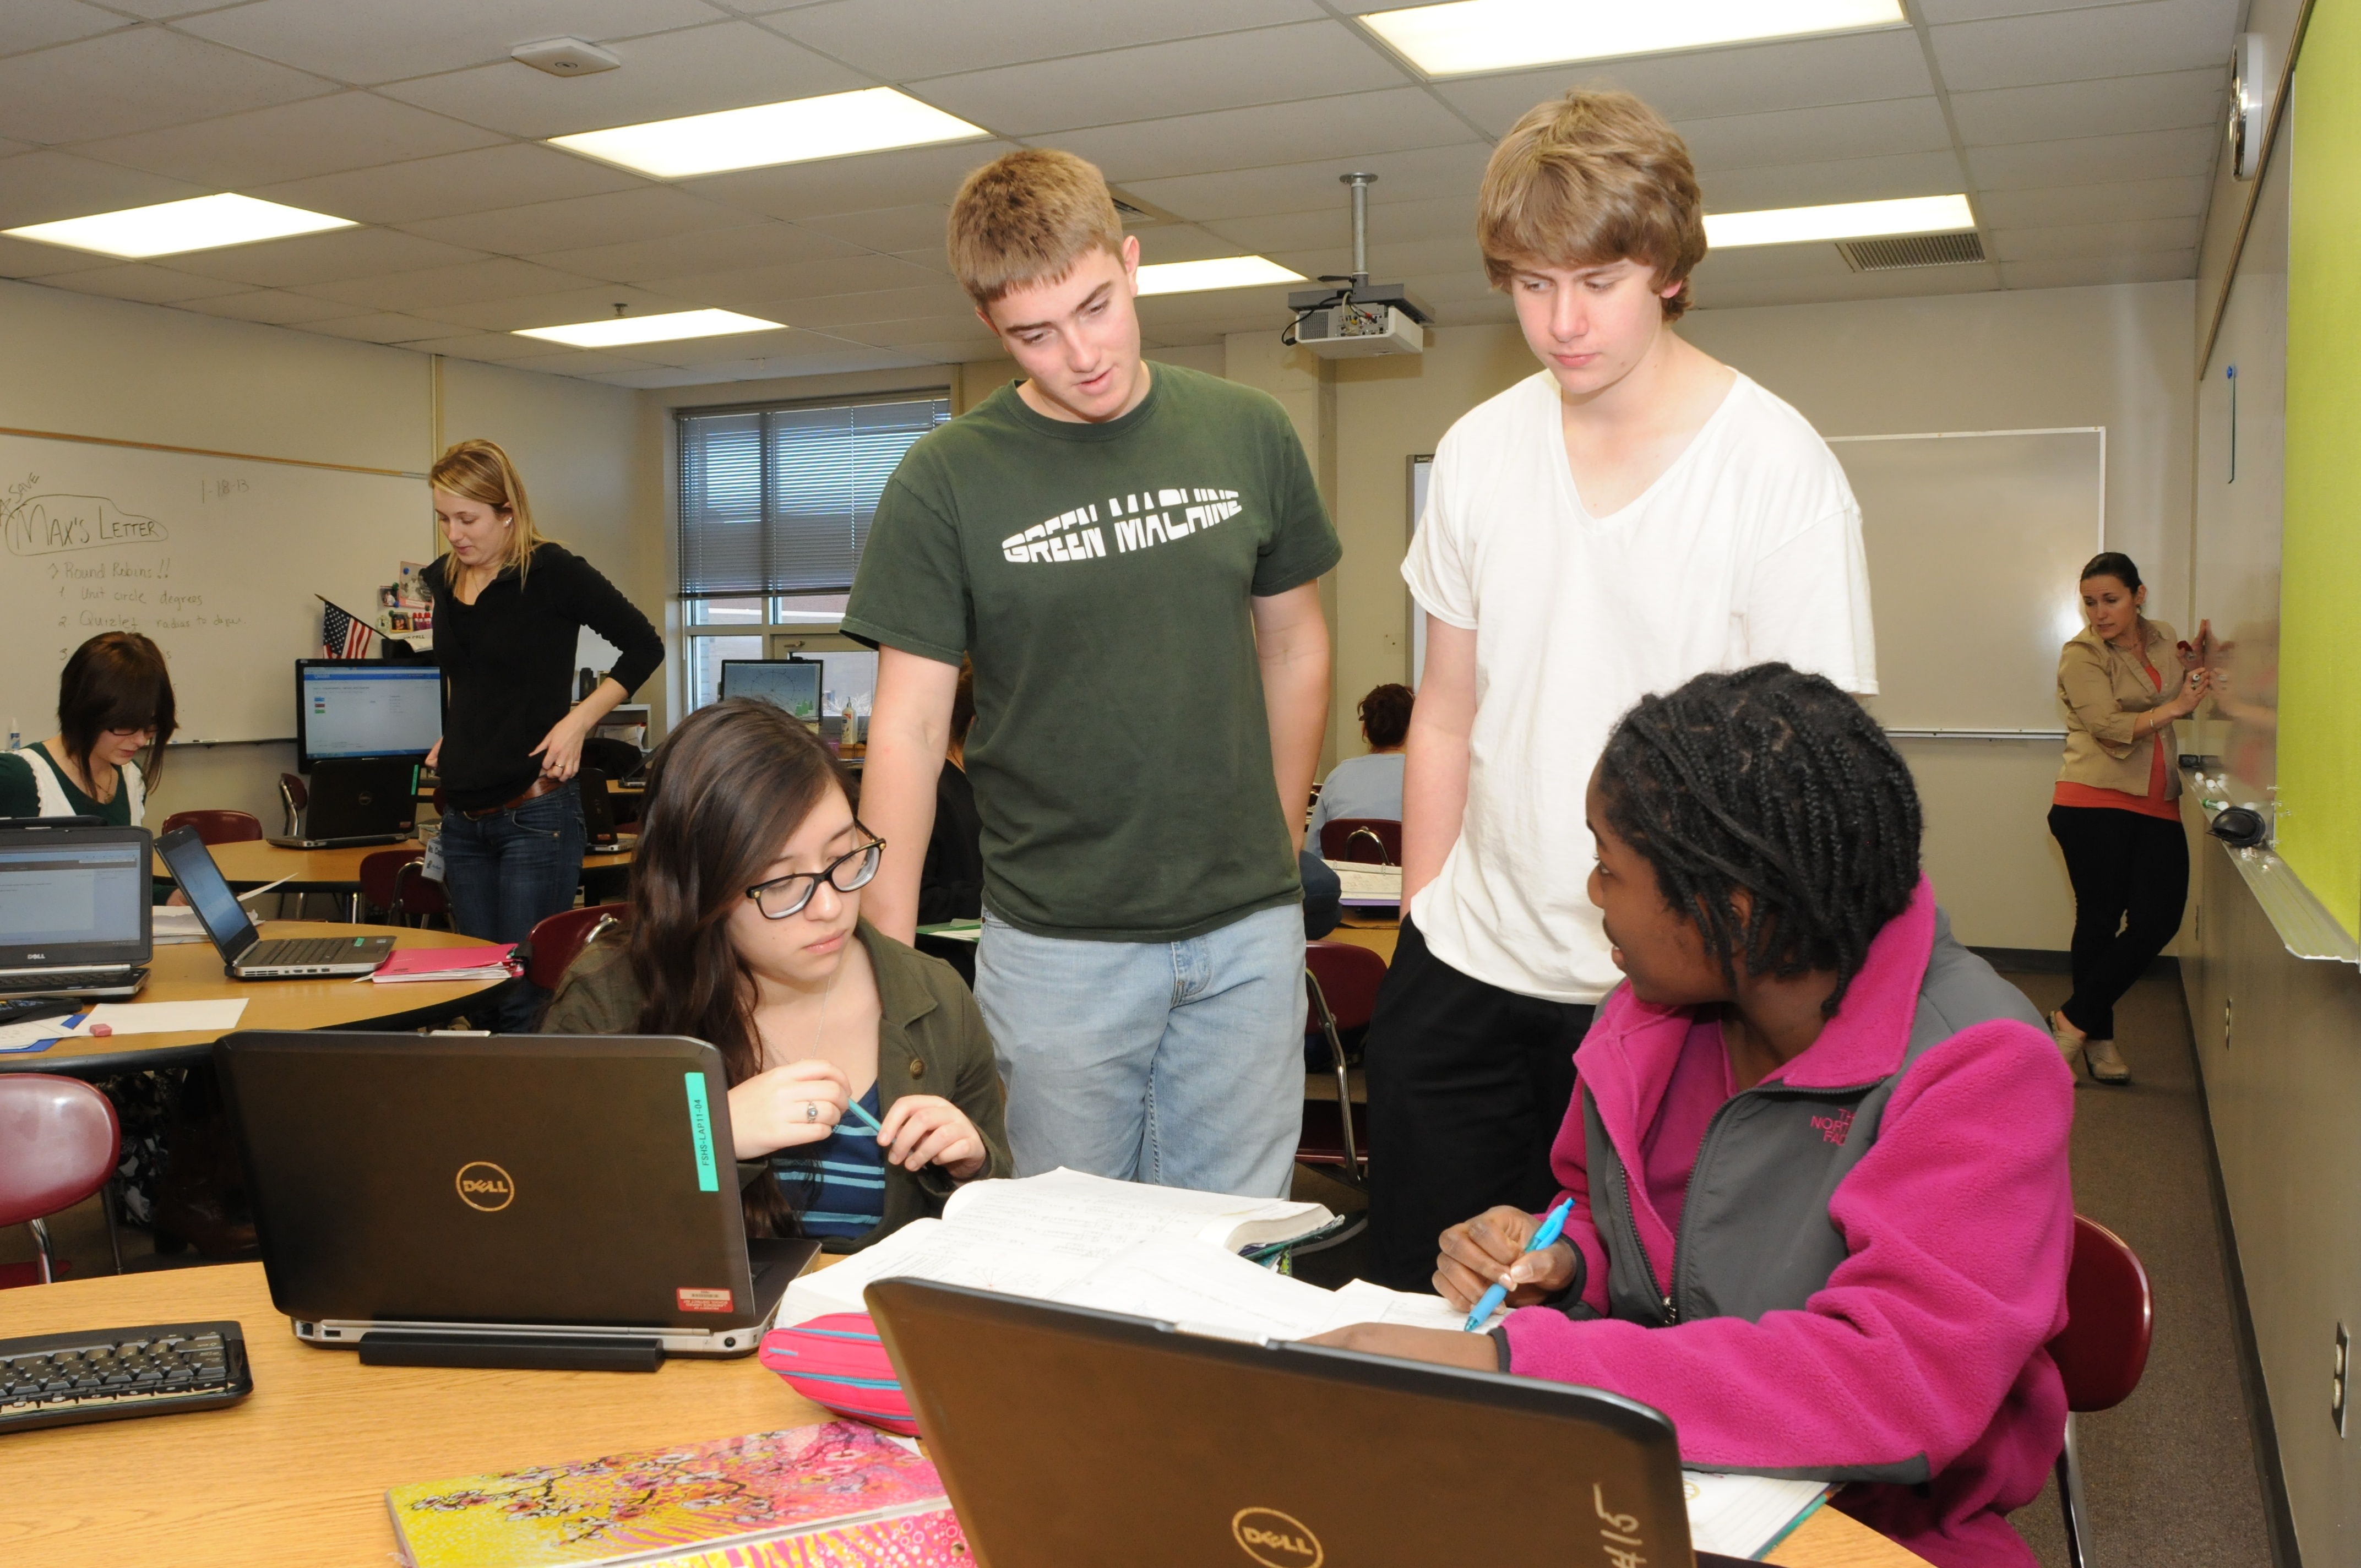 Students discussing in a blended learning classroom